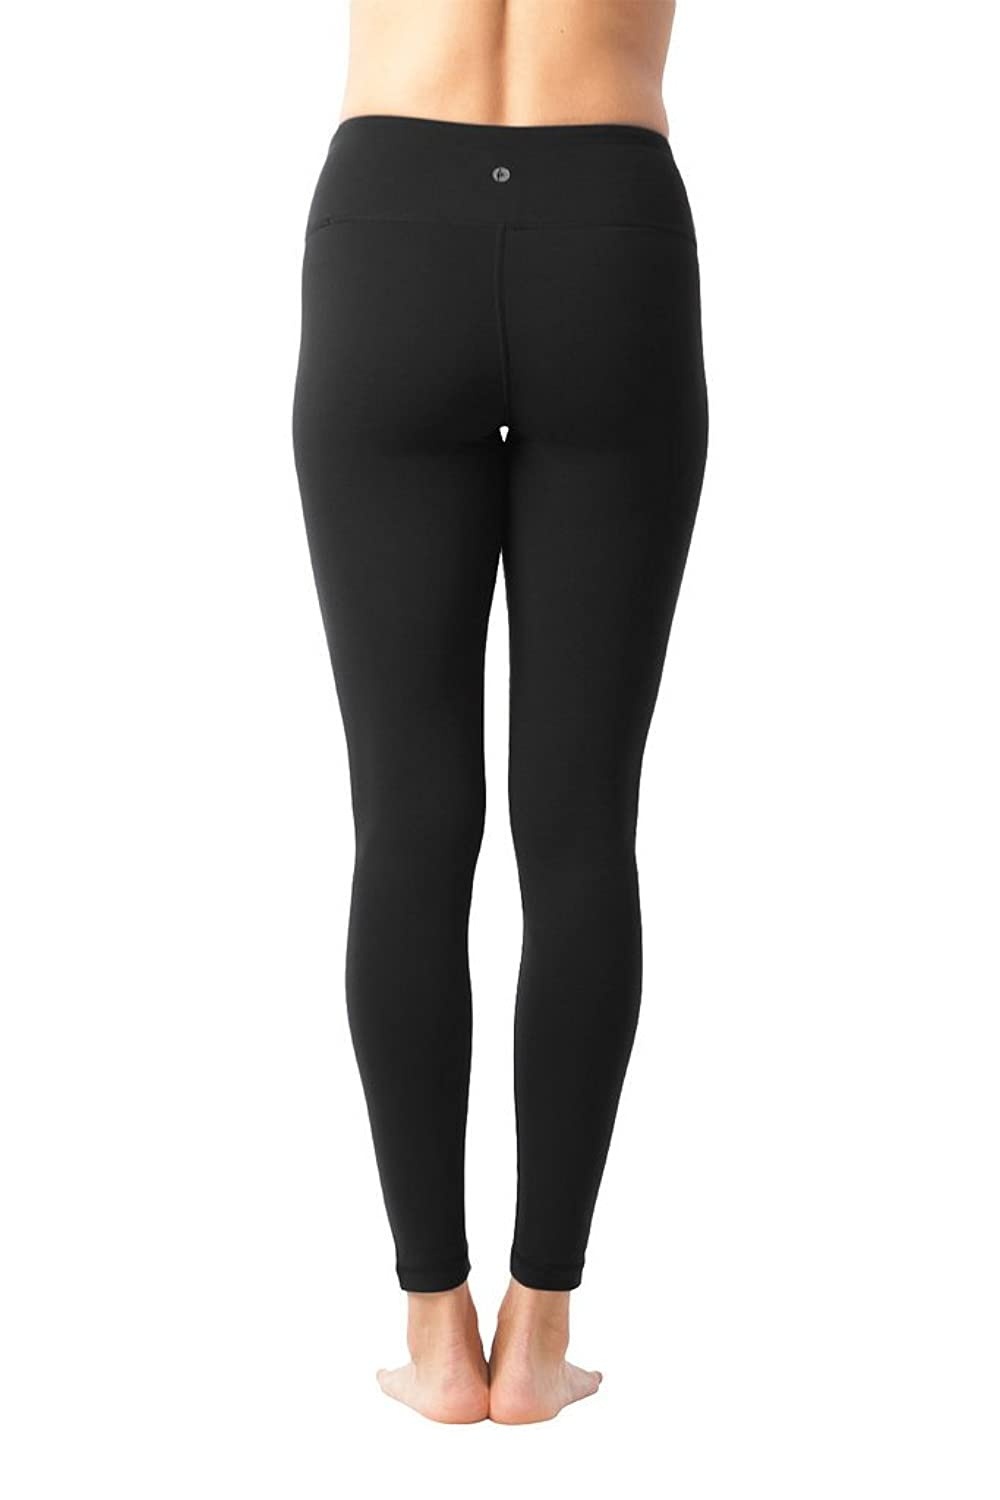 3f71e0bbb5 Mua sản phẩm 90 Degree By Reflex Womens Power Flex Yoga Pants ...